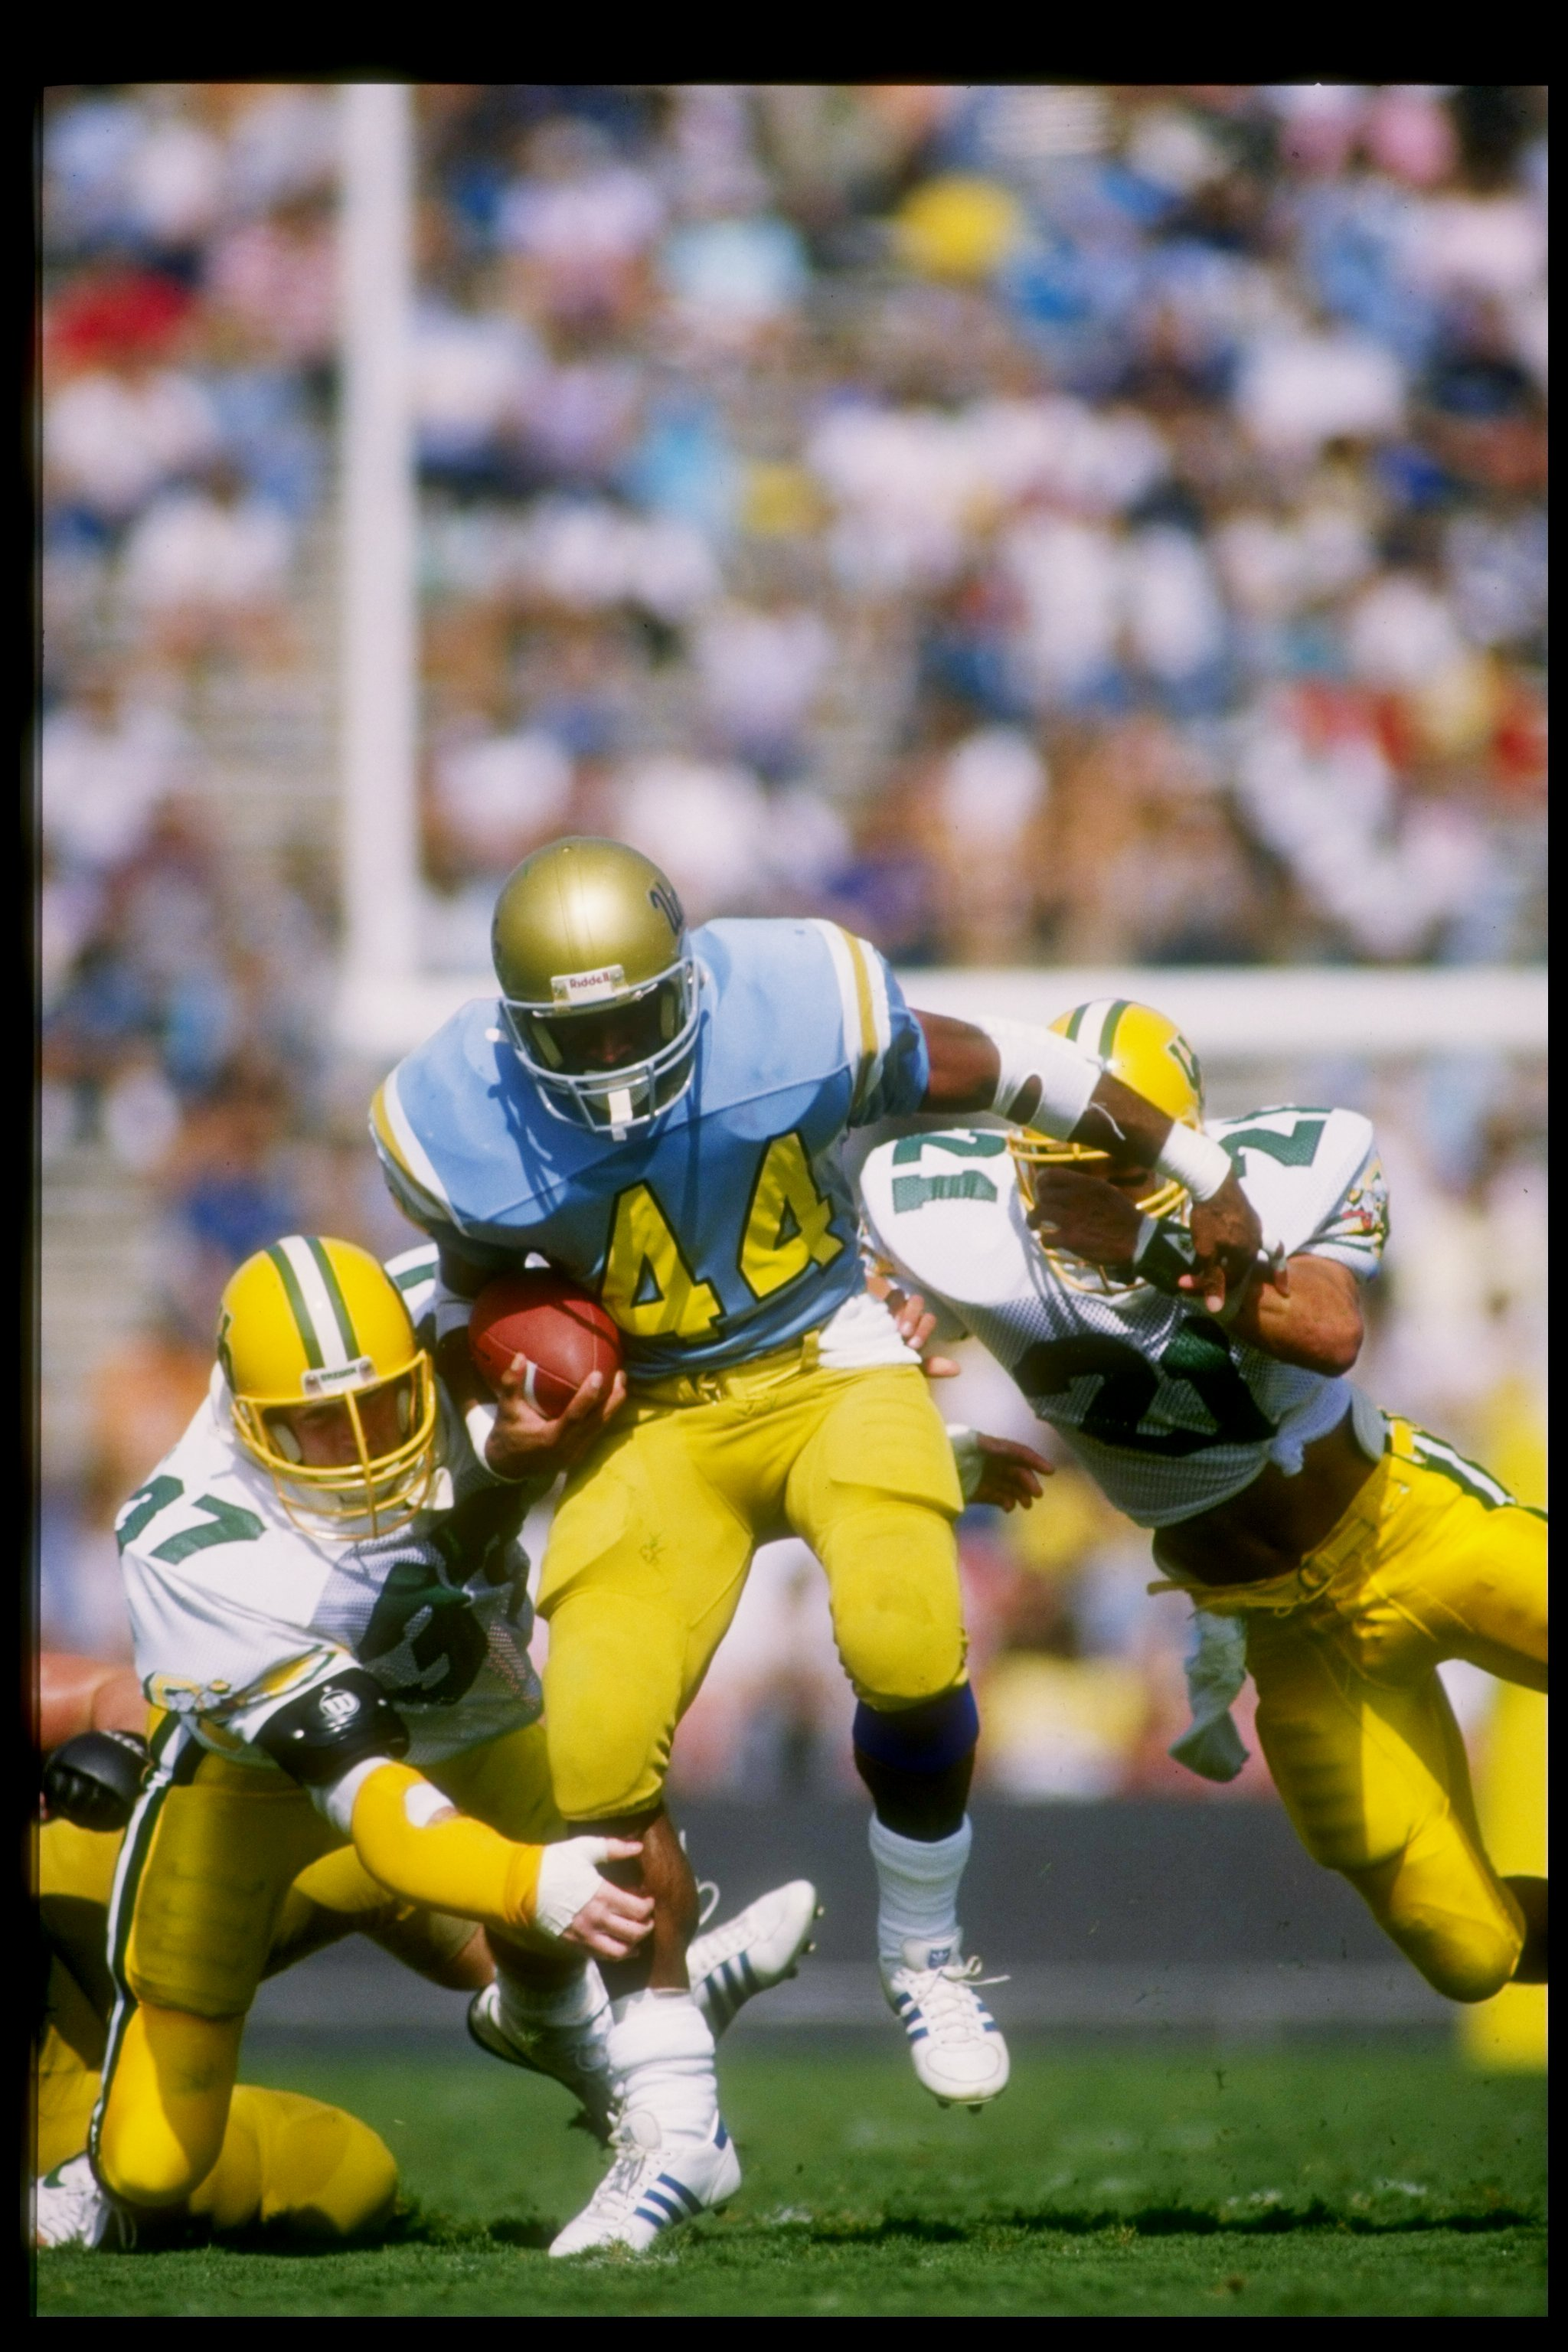 Tailback Gaston Green of the UCLA Bruins tries to break a tackle during a game against the Oregon Ducks at the Rose Bowl in Pasadena, California.